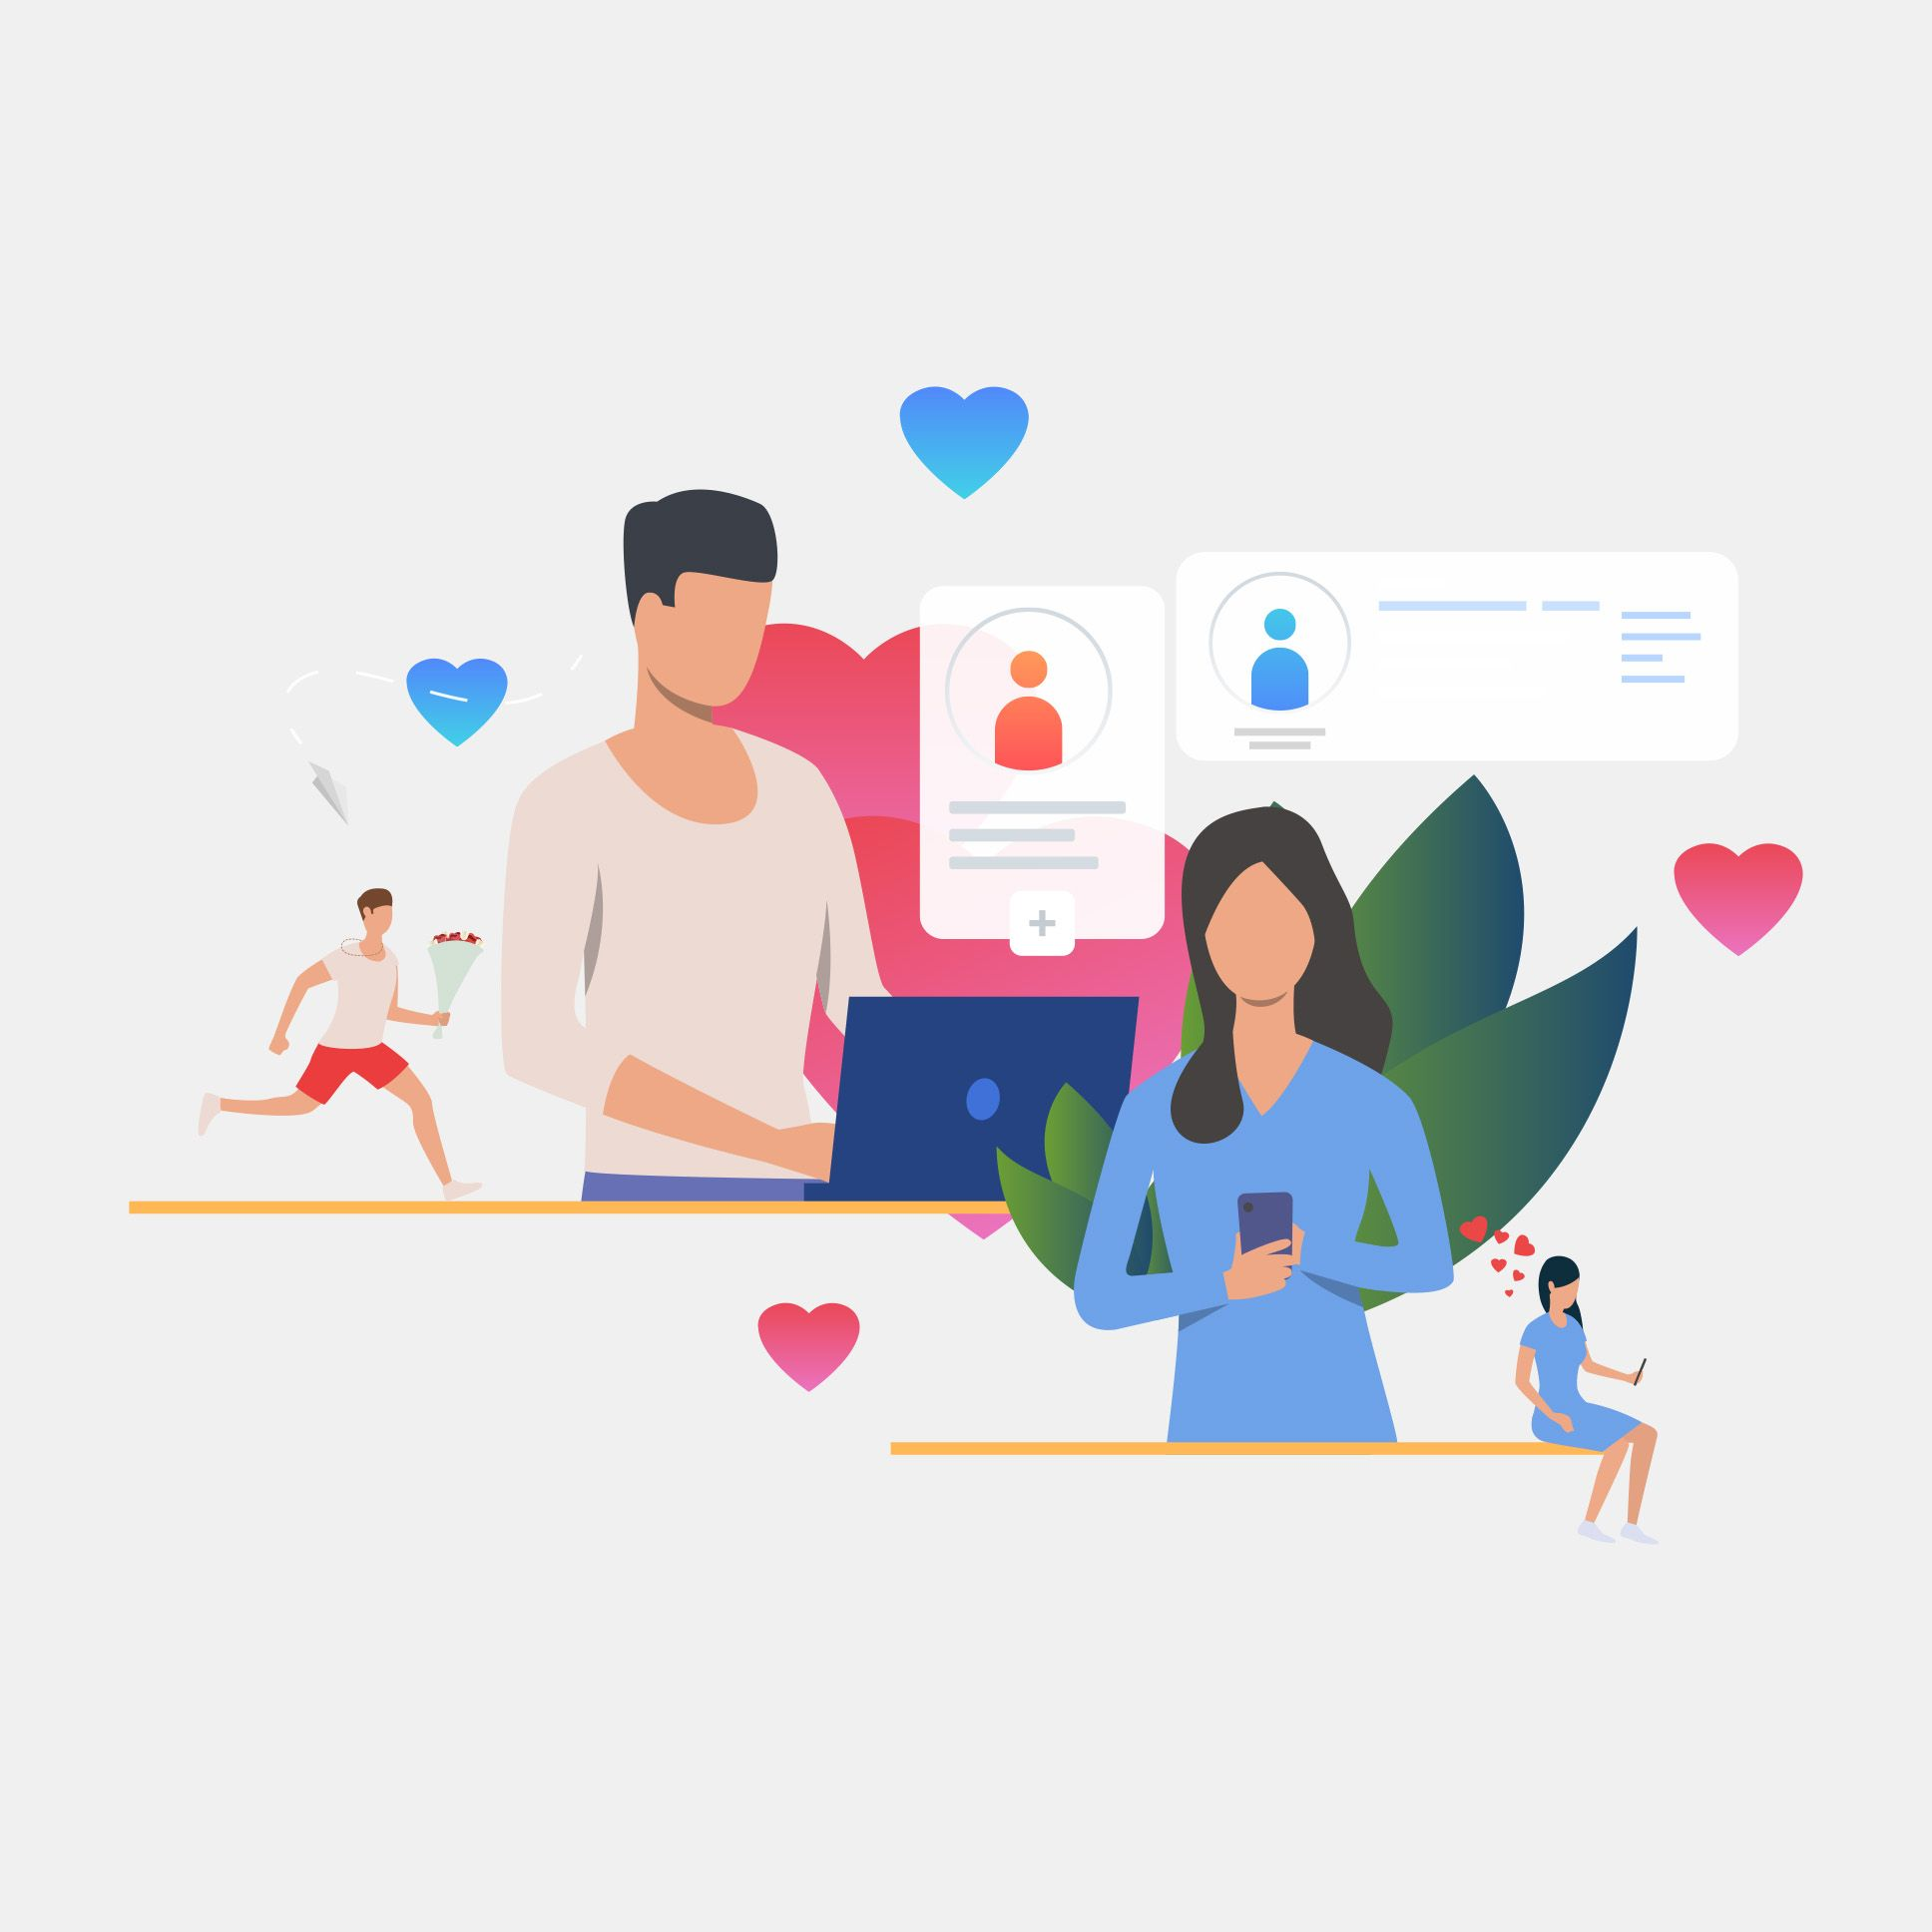 Illustration of communication on a dating site